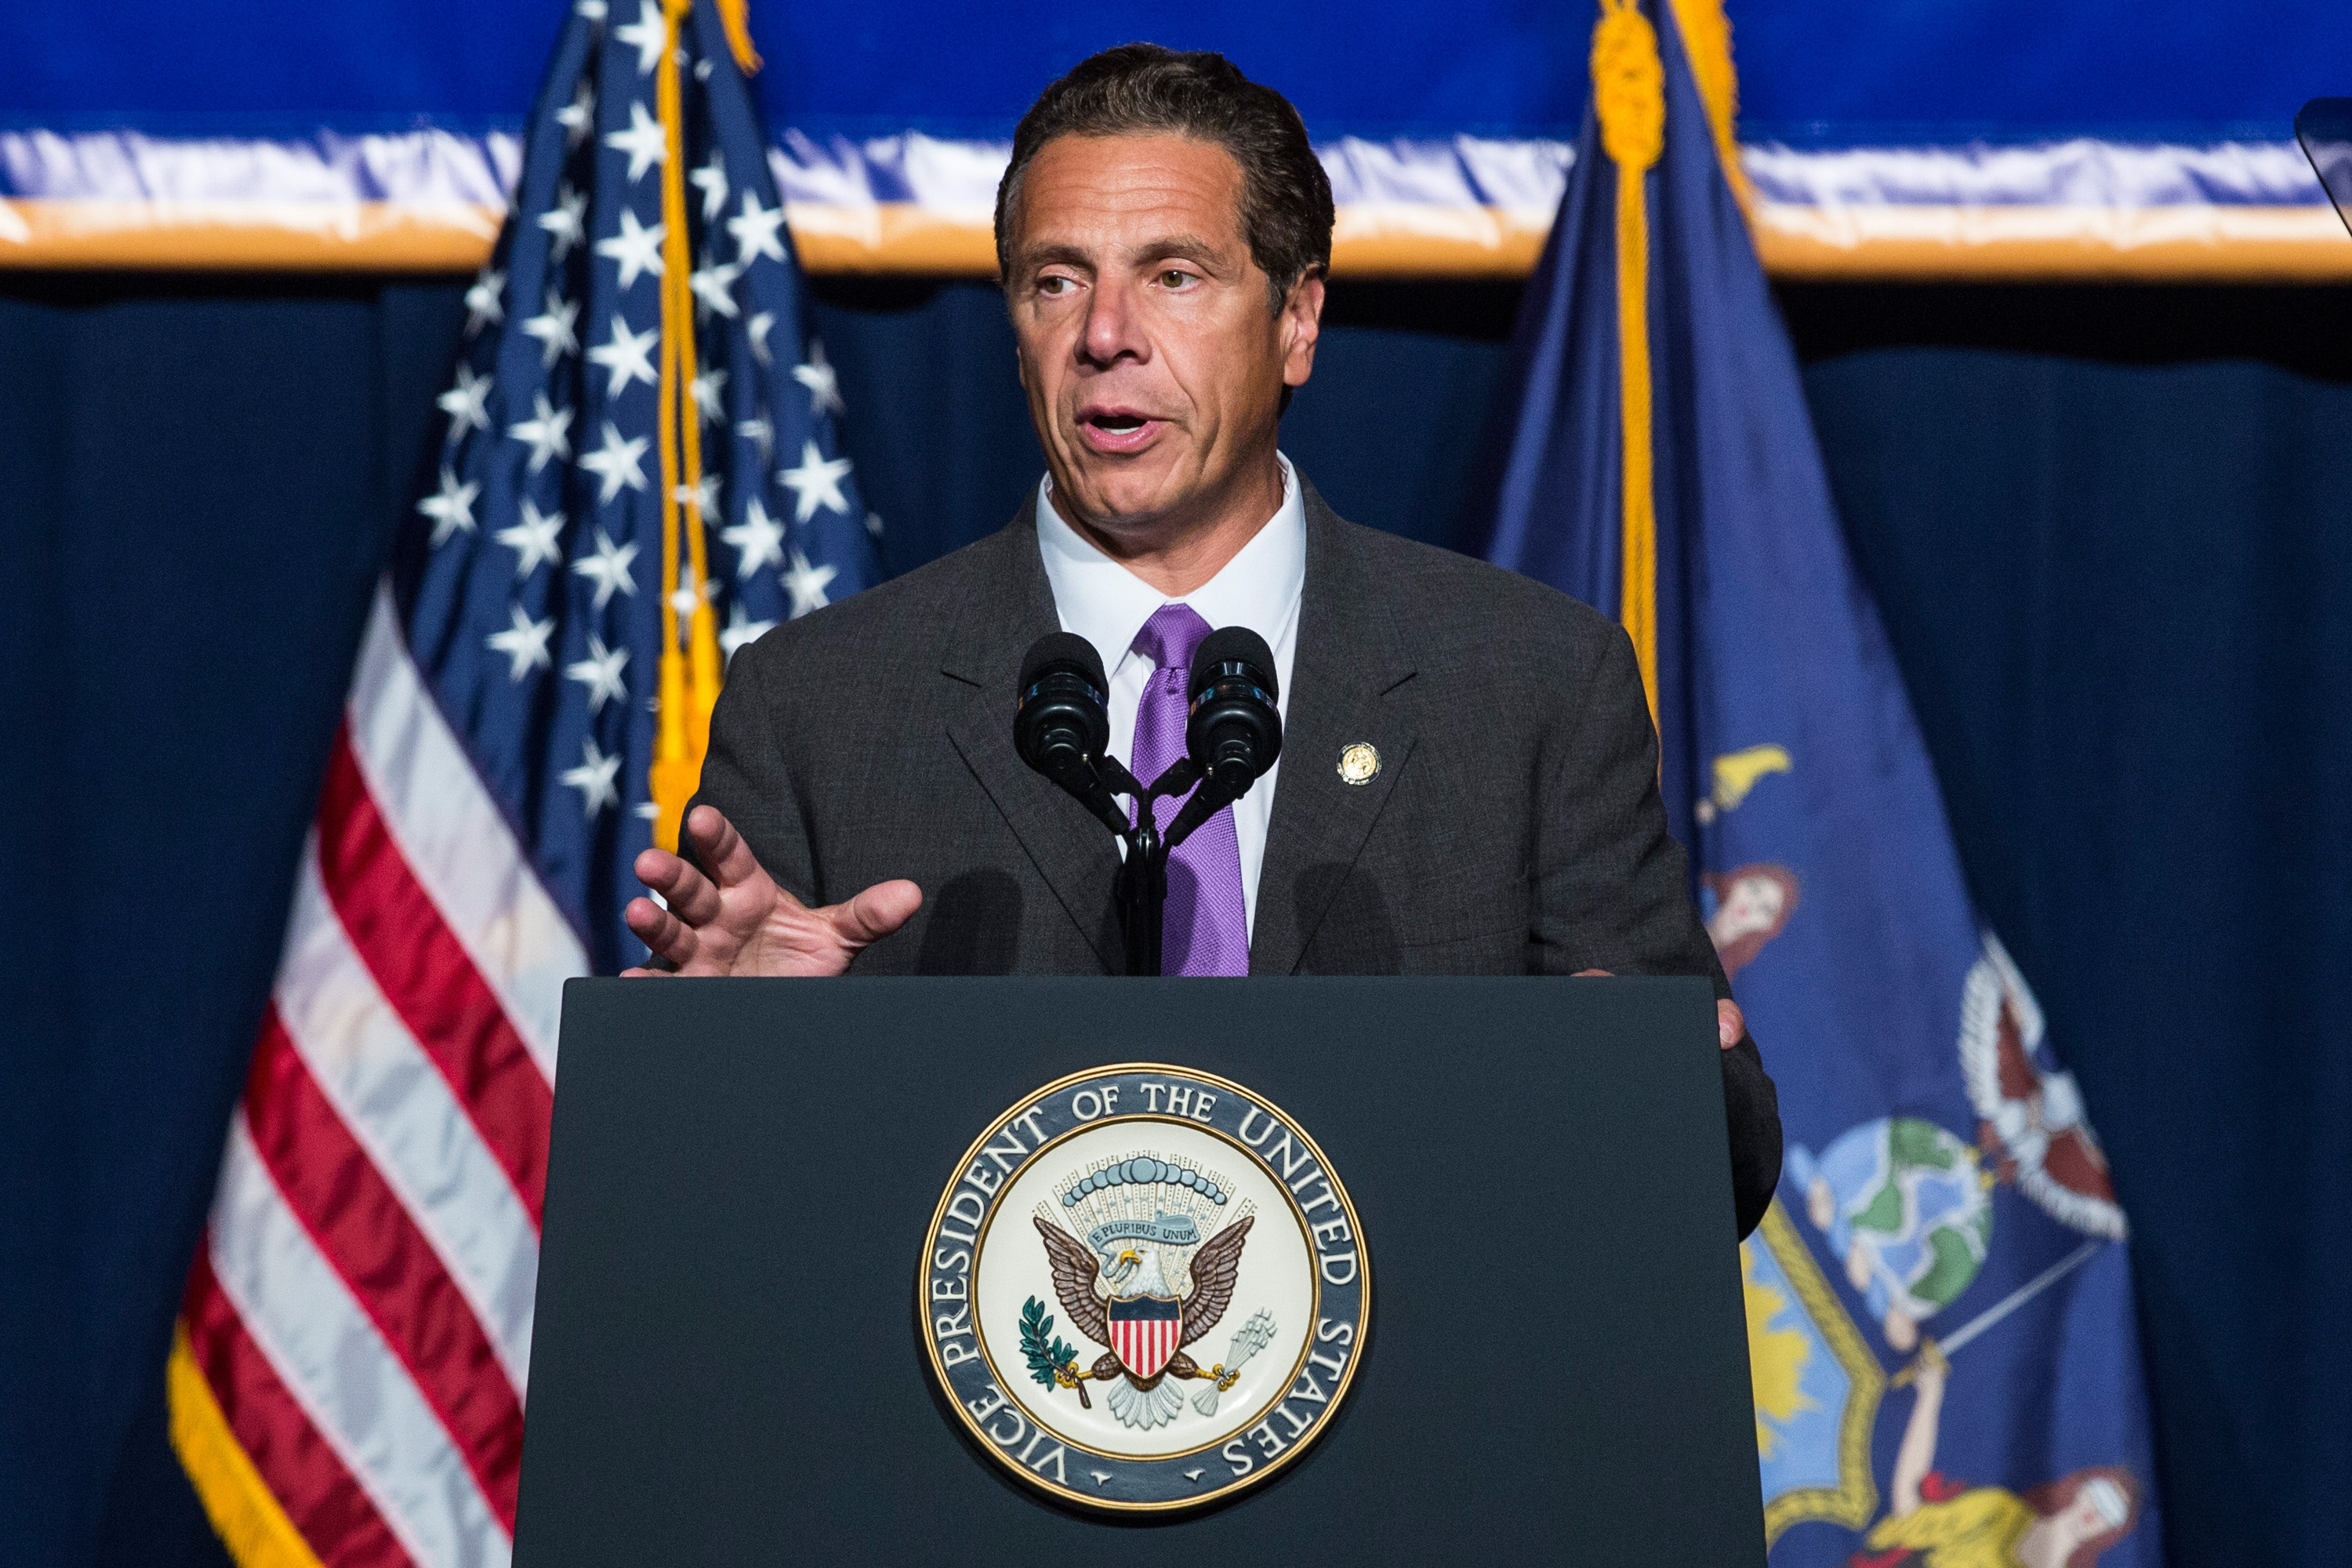 New York Governor Andrew Cuomo announces his support to raise the minimum wage for the state of New York to $15 per hour on Sept. 10, 2015.